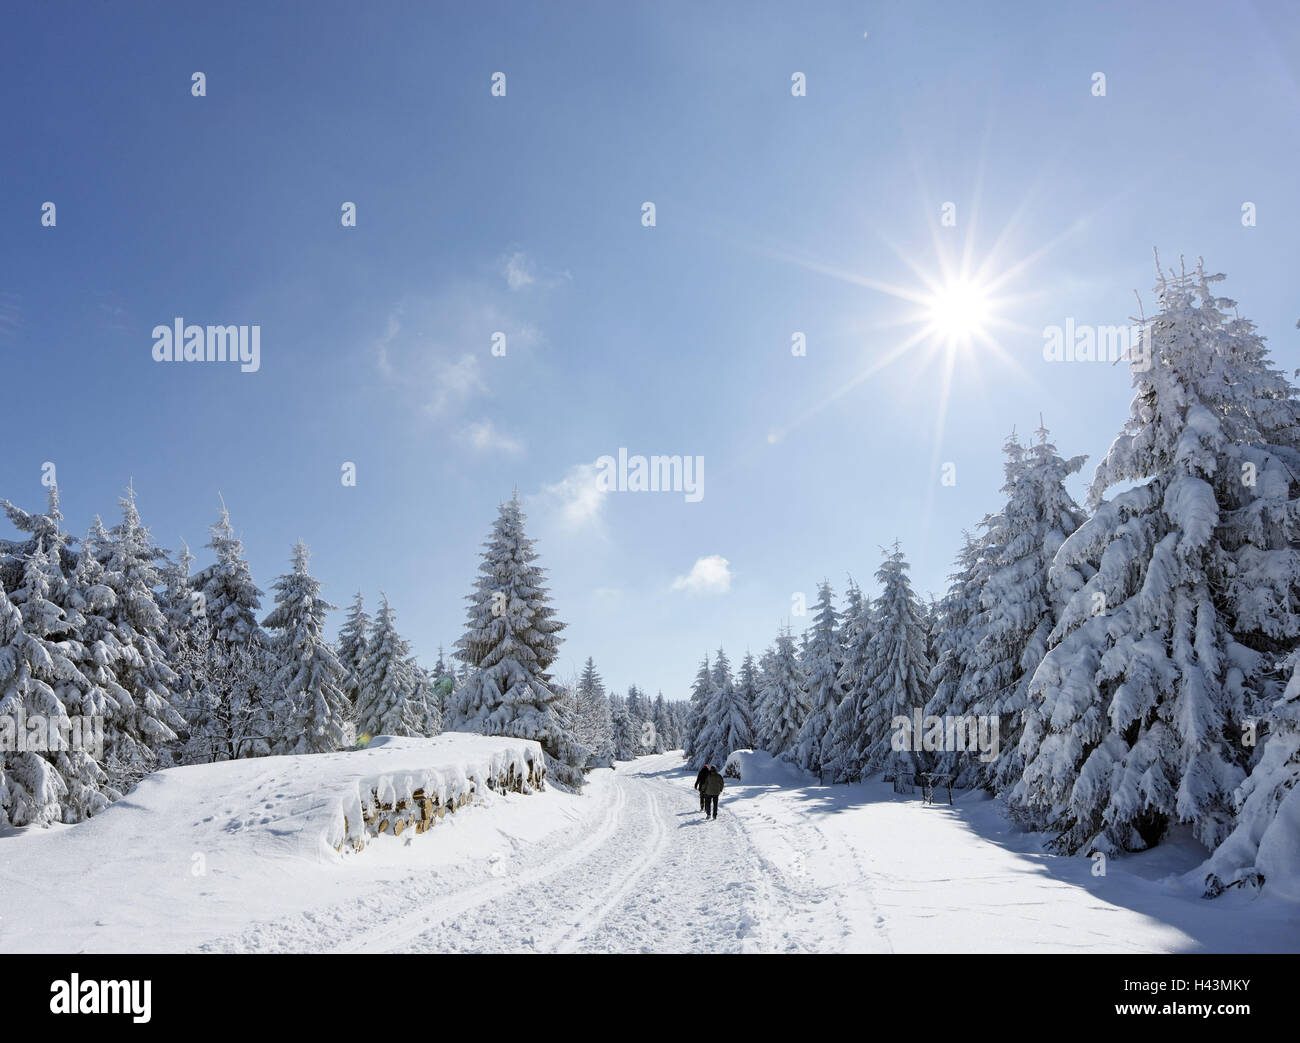 Path, hikers, snow, spruces, forest, sun, - Stock Image